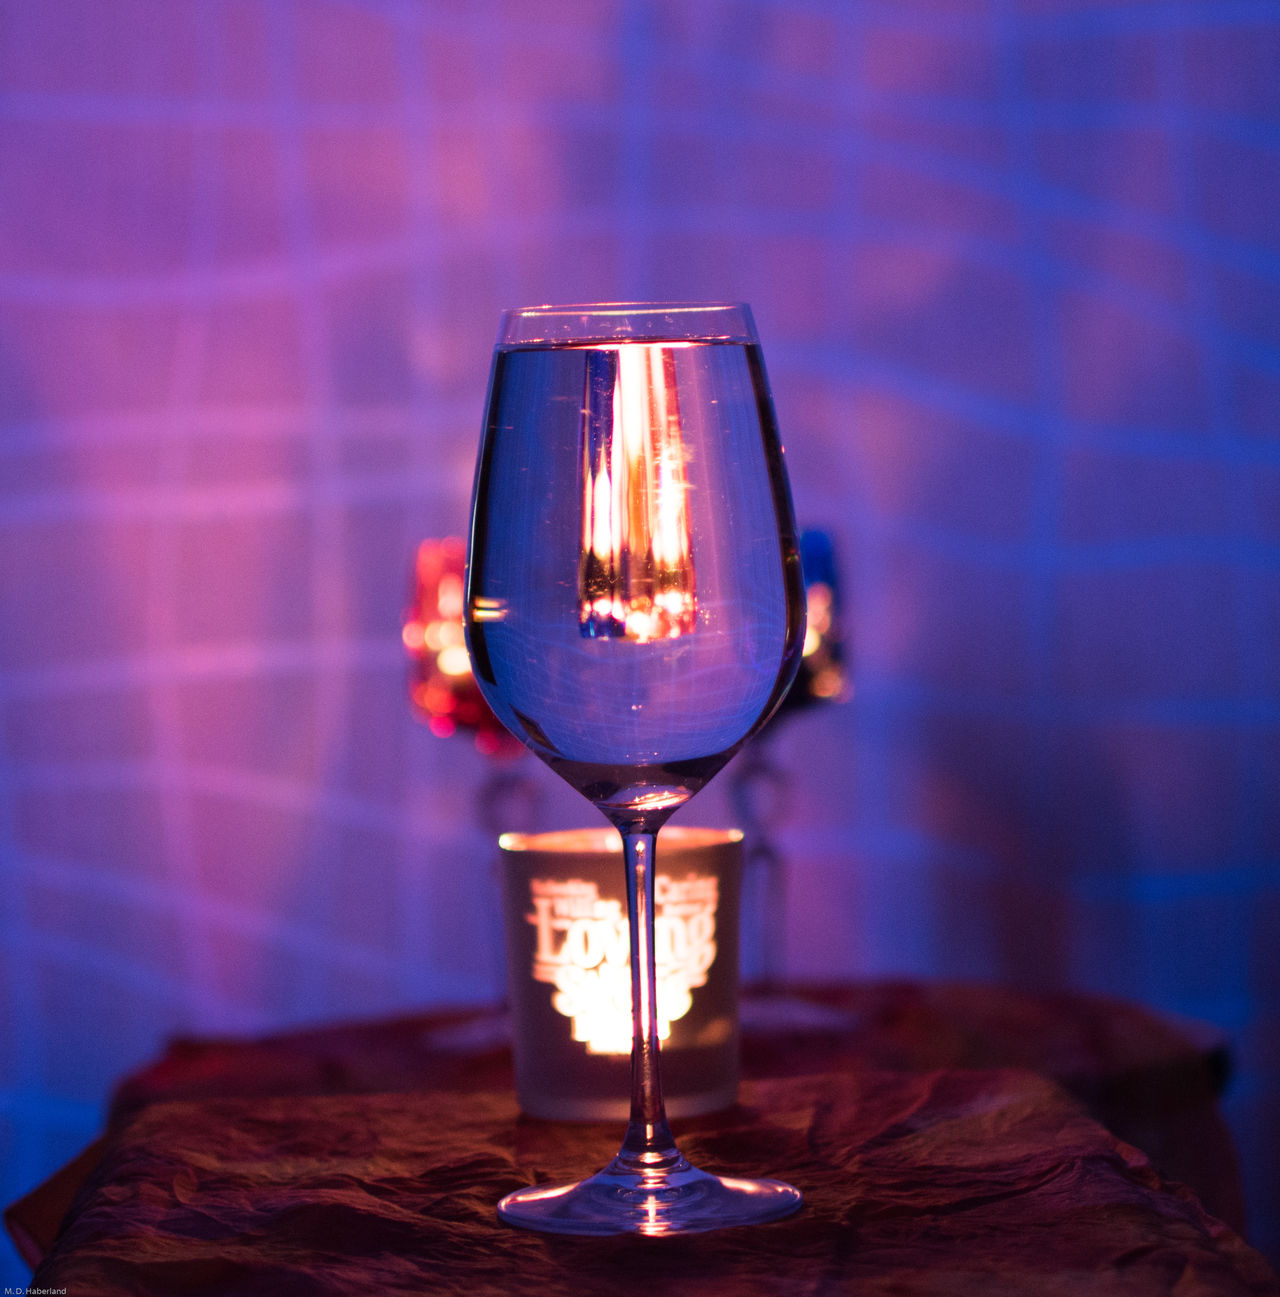 EyeEmNewHere Candle Light Blacklight Waterglass Mirrored Candle Indoors  No People Illuminated